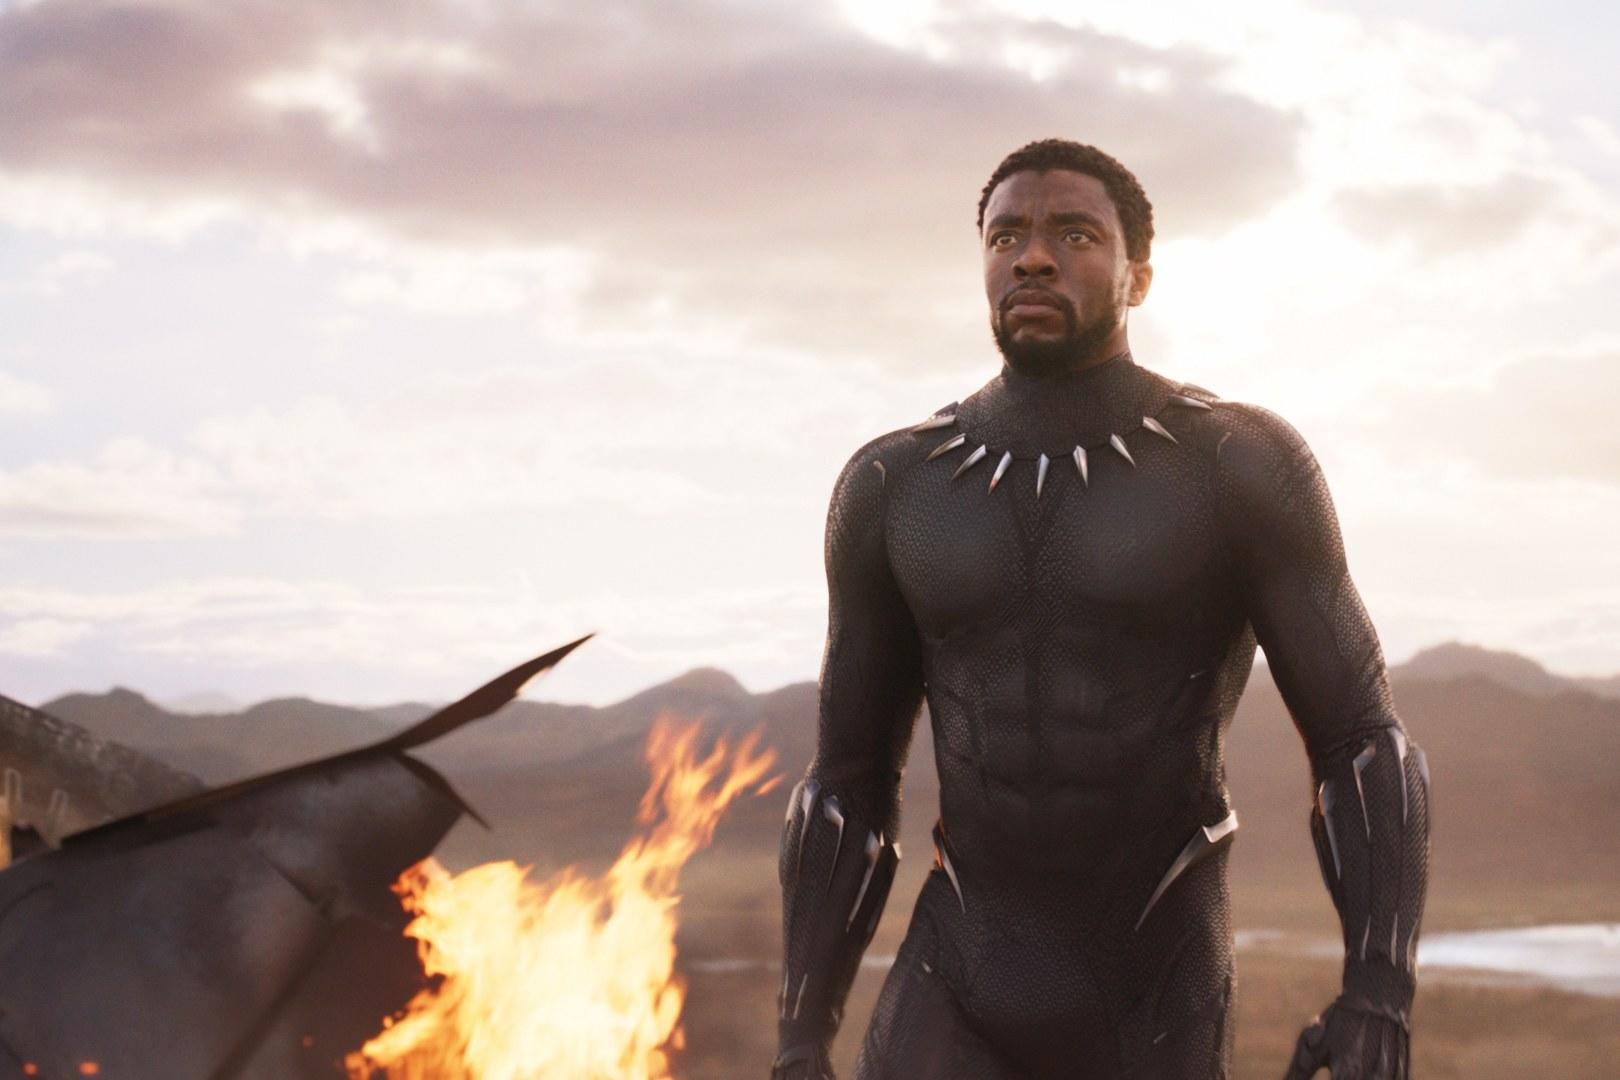 The Marvel superhero movie is now the third highest-grossing film of all time.